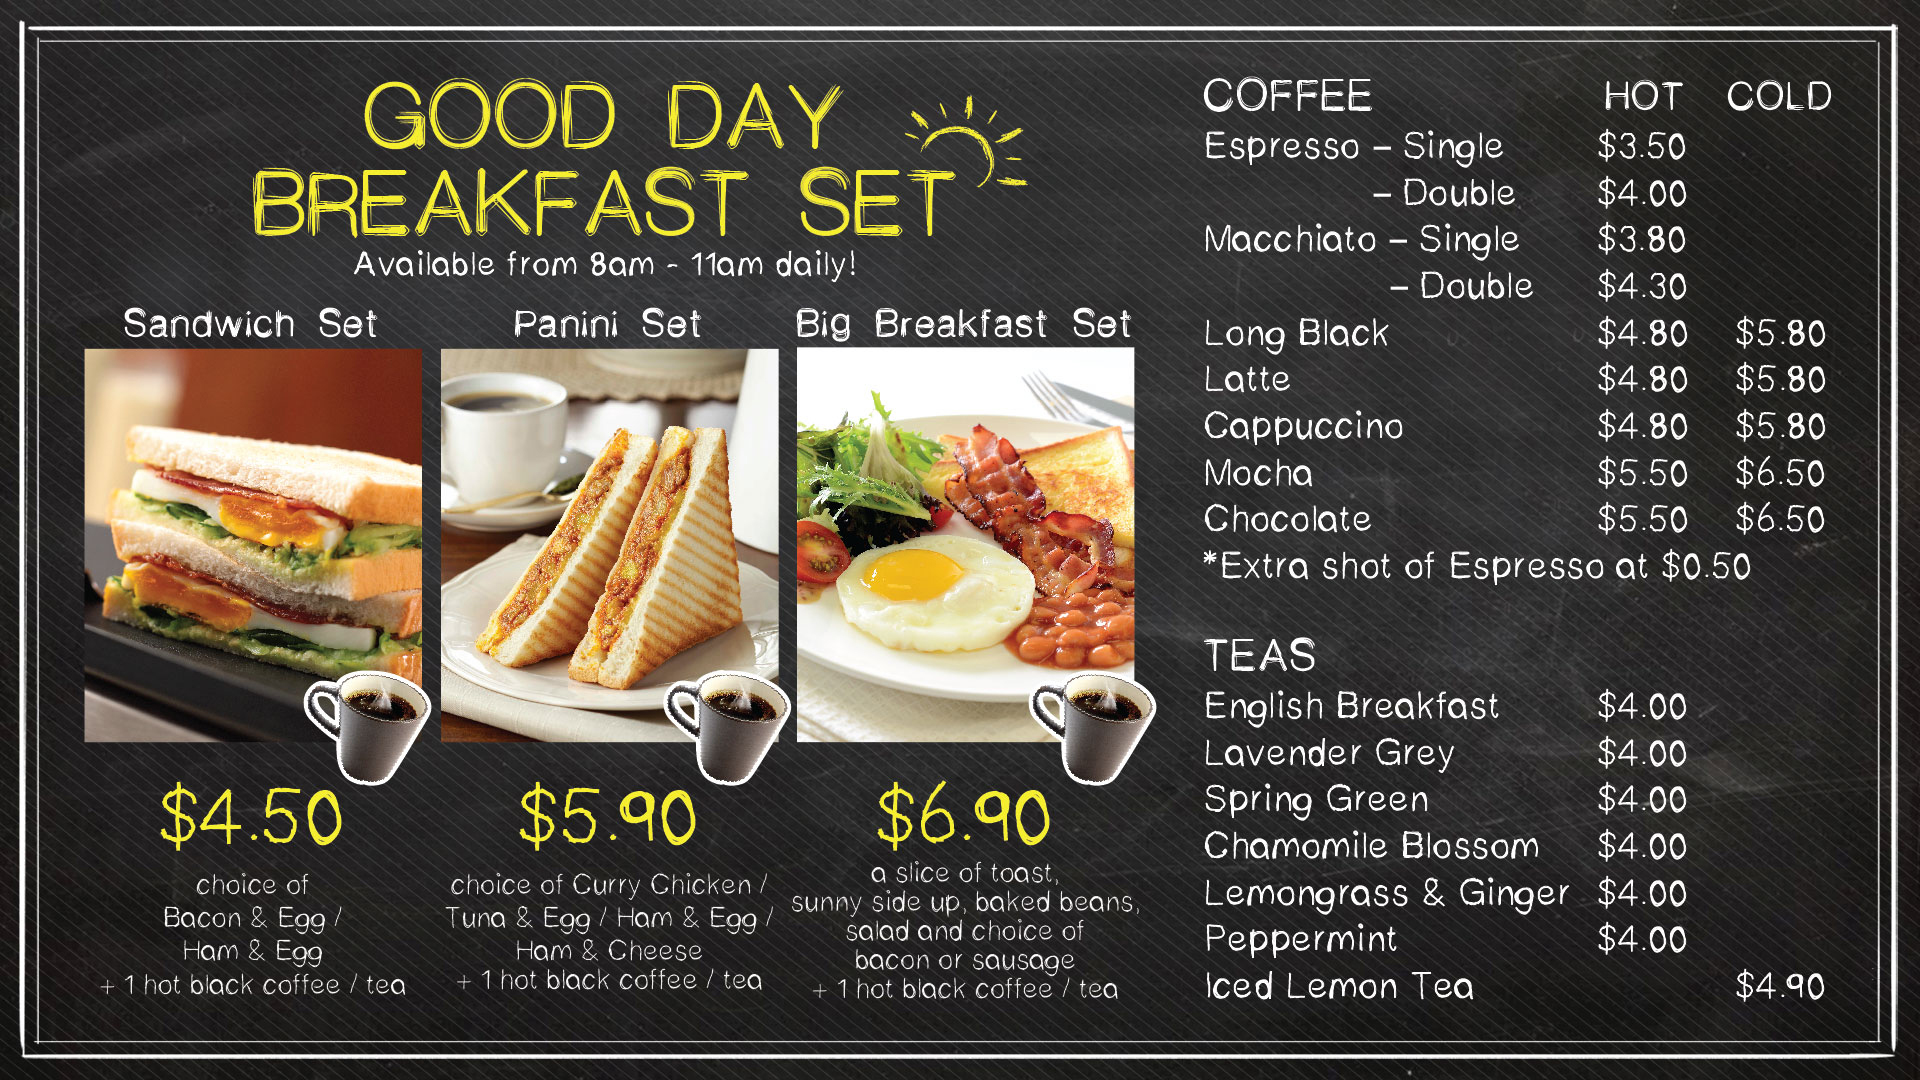 BreadTalk Cafe - Breakfast Menu - TREAT